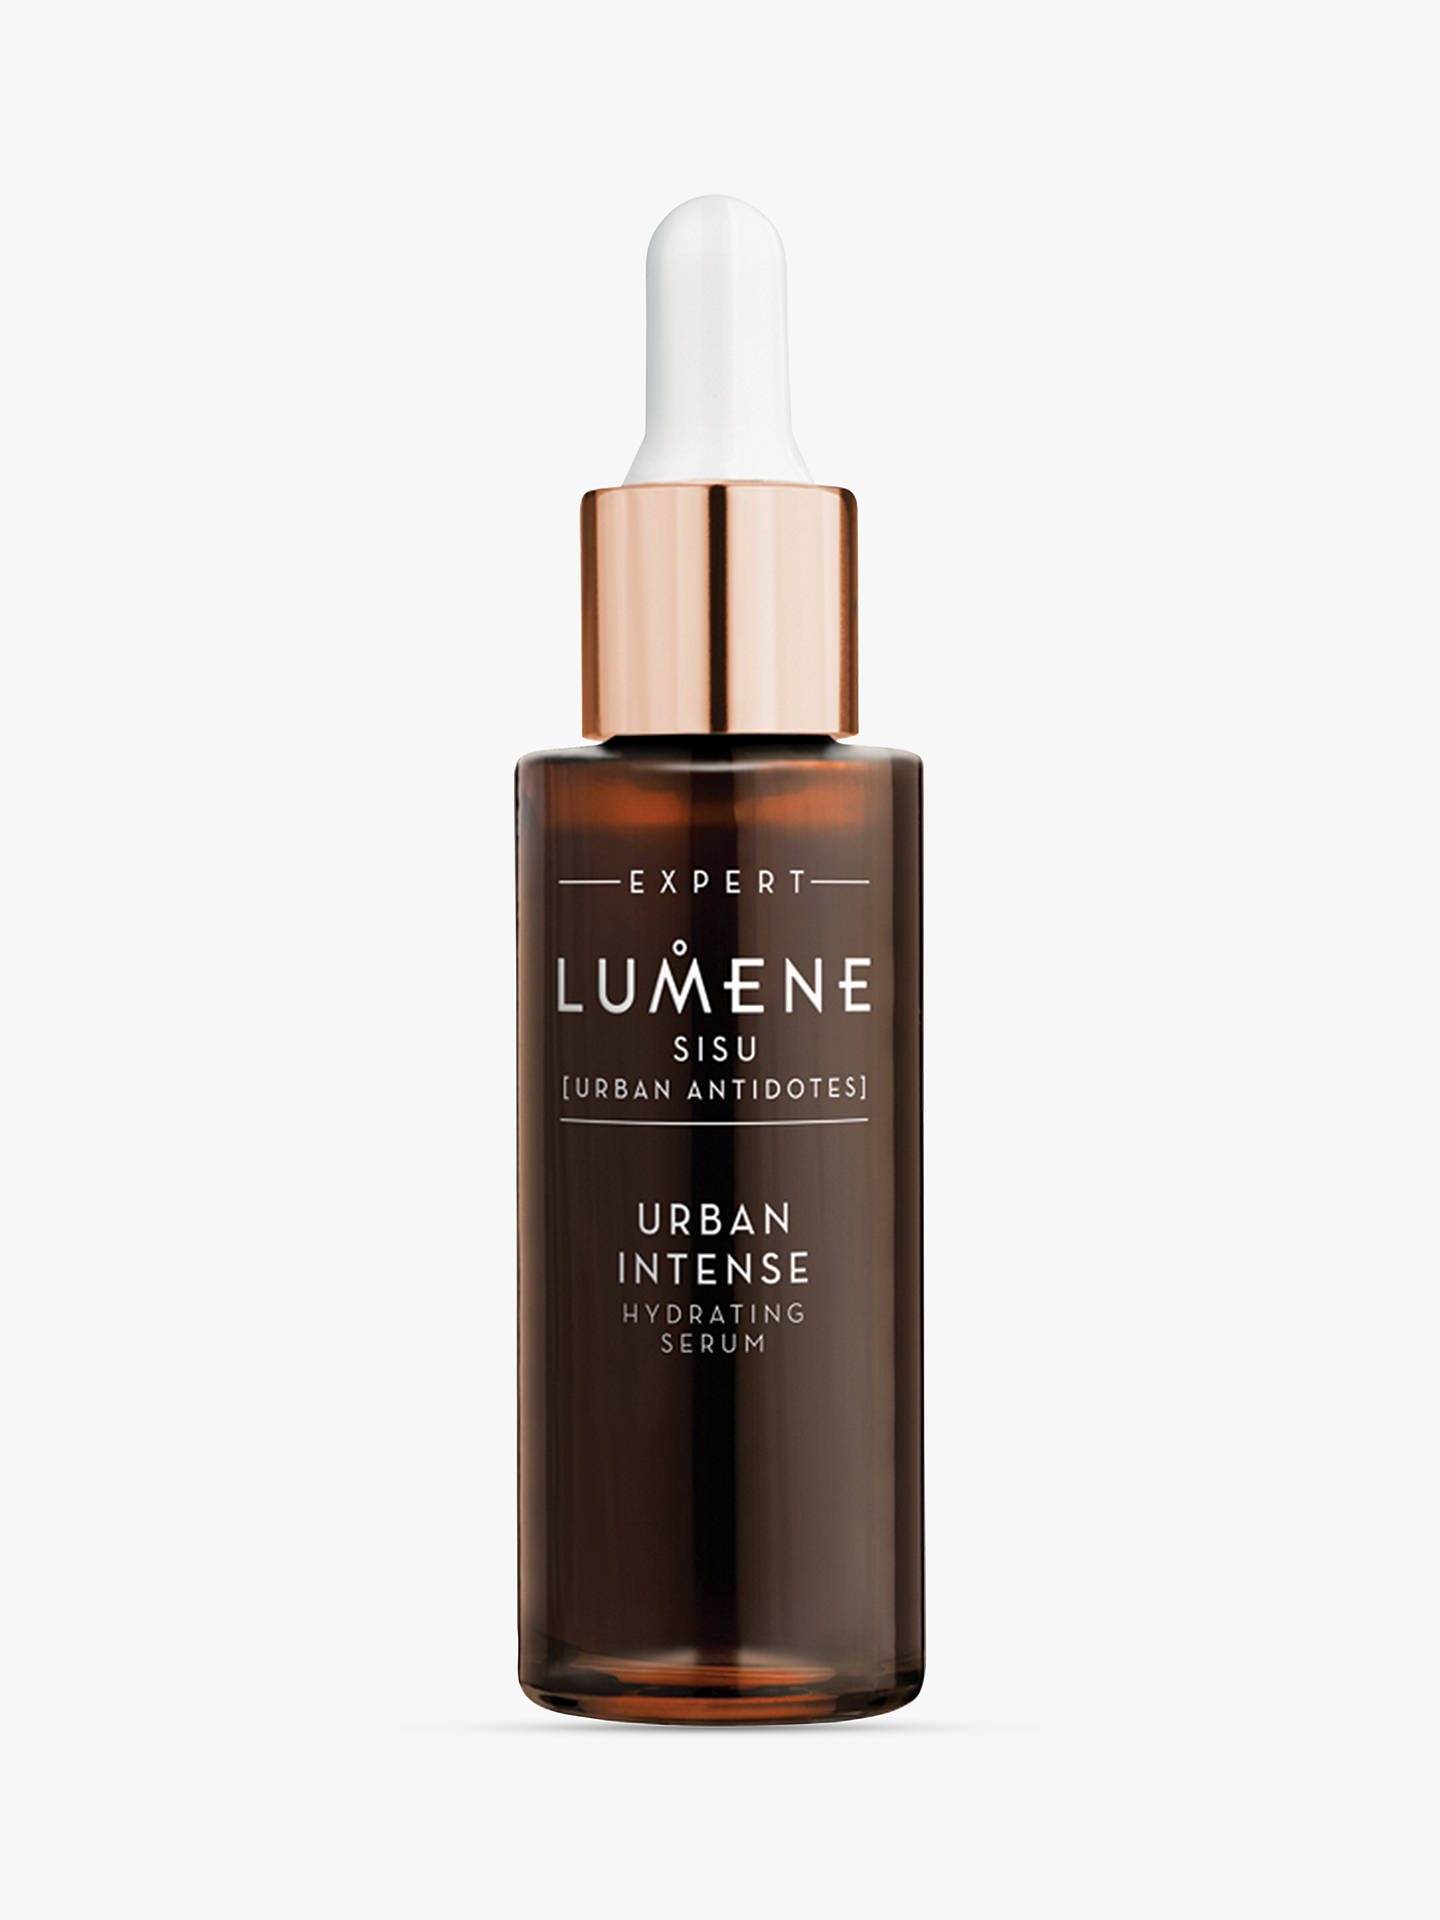 Lumene Nordic Detox Urban Intense Hydrating Serum, 30ml by Lumene